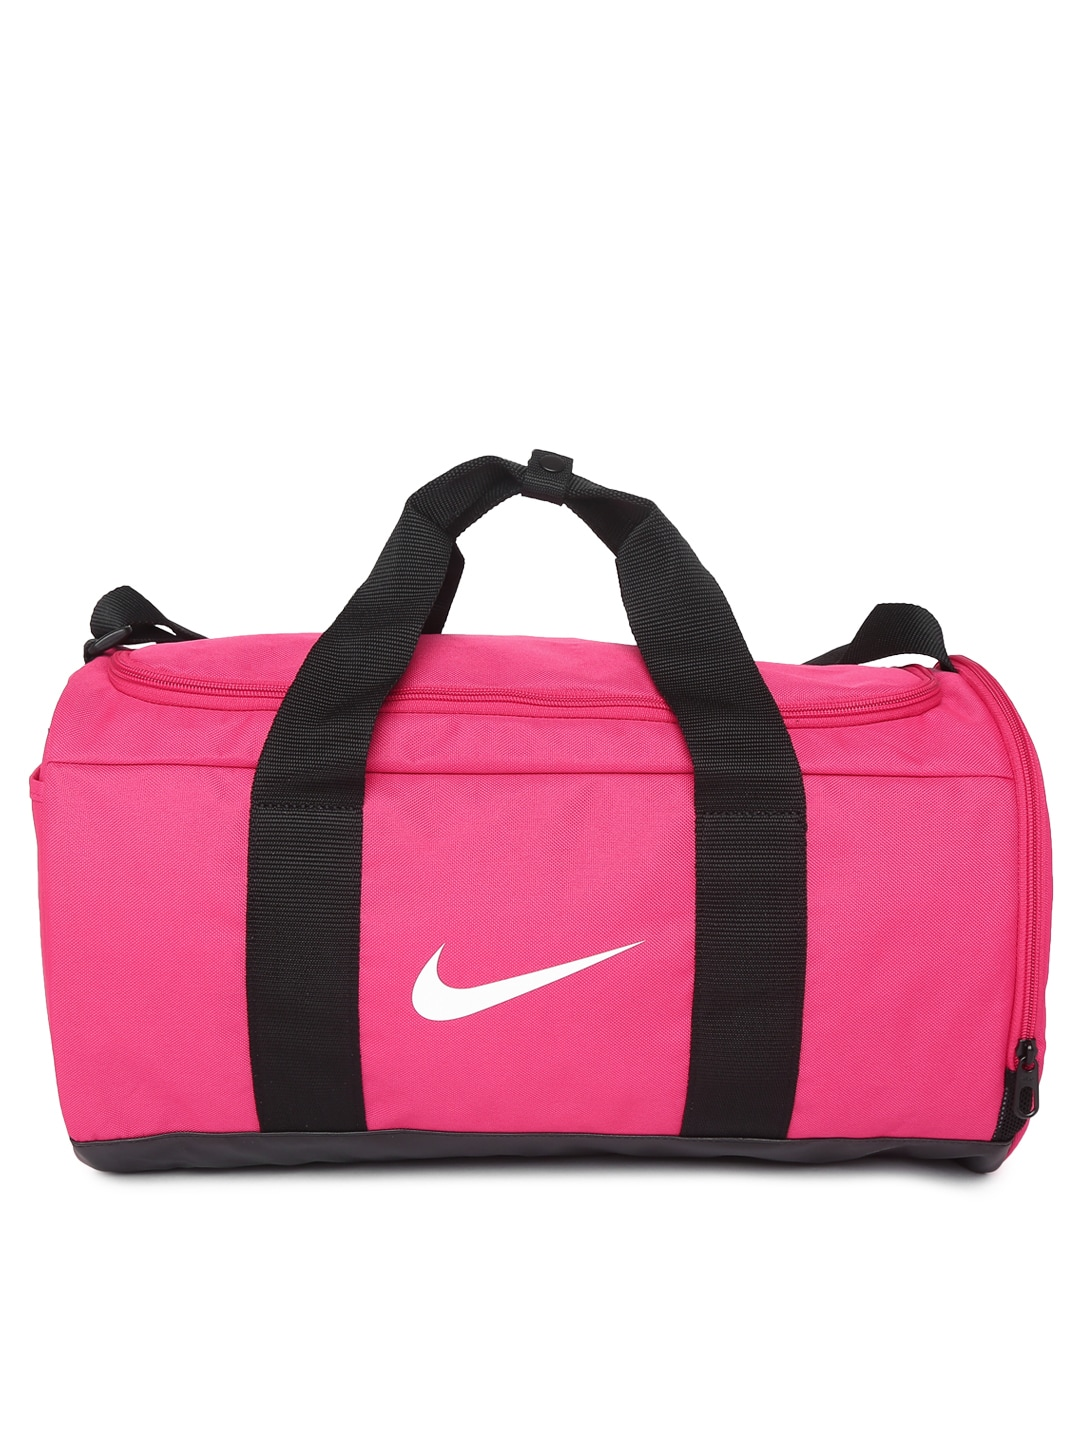 7ee8cd3c21c2 Women Duffle Bag - Buy Women Duffle Bag online in India